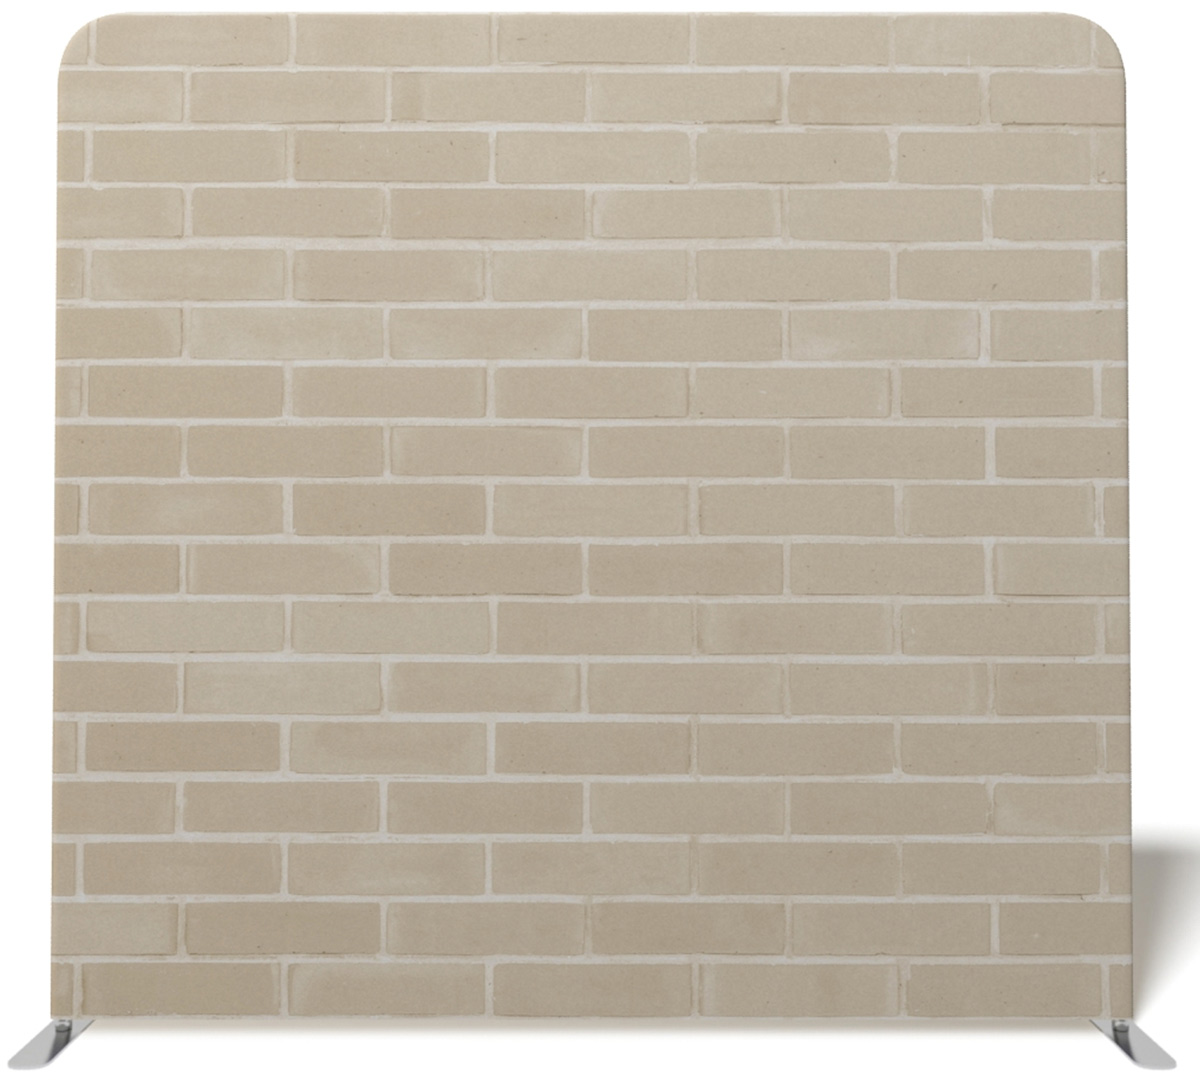 Light Brick stretch Backdrop